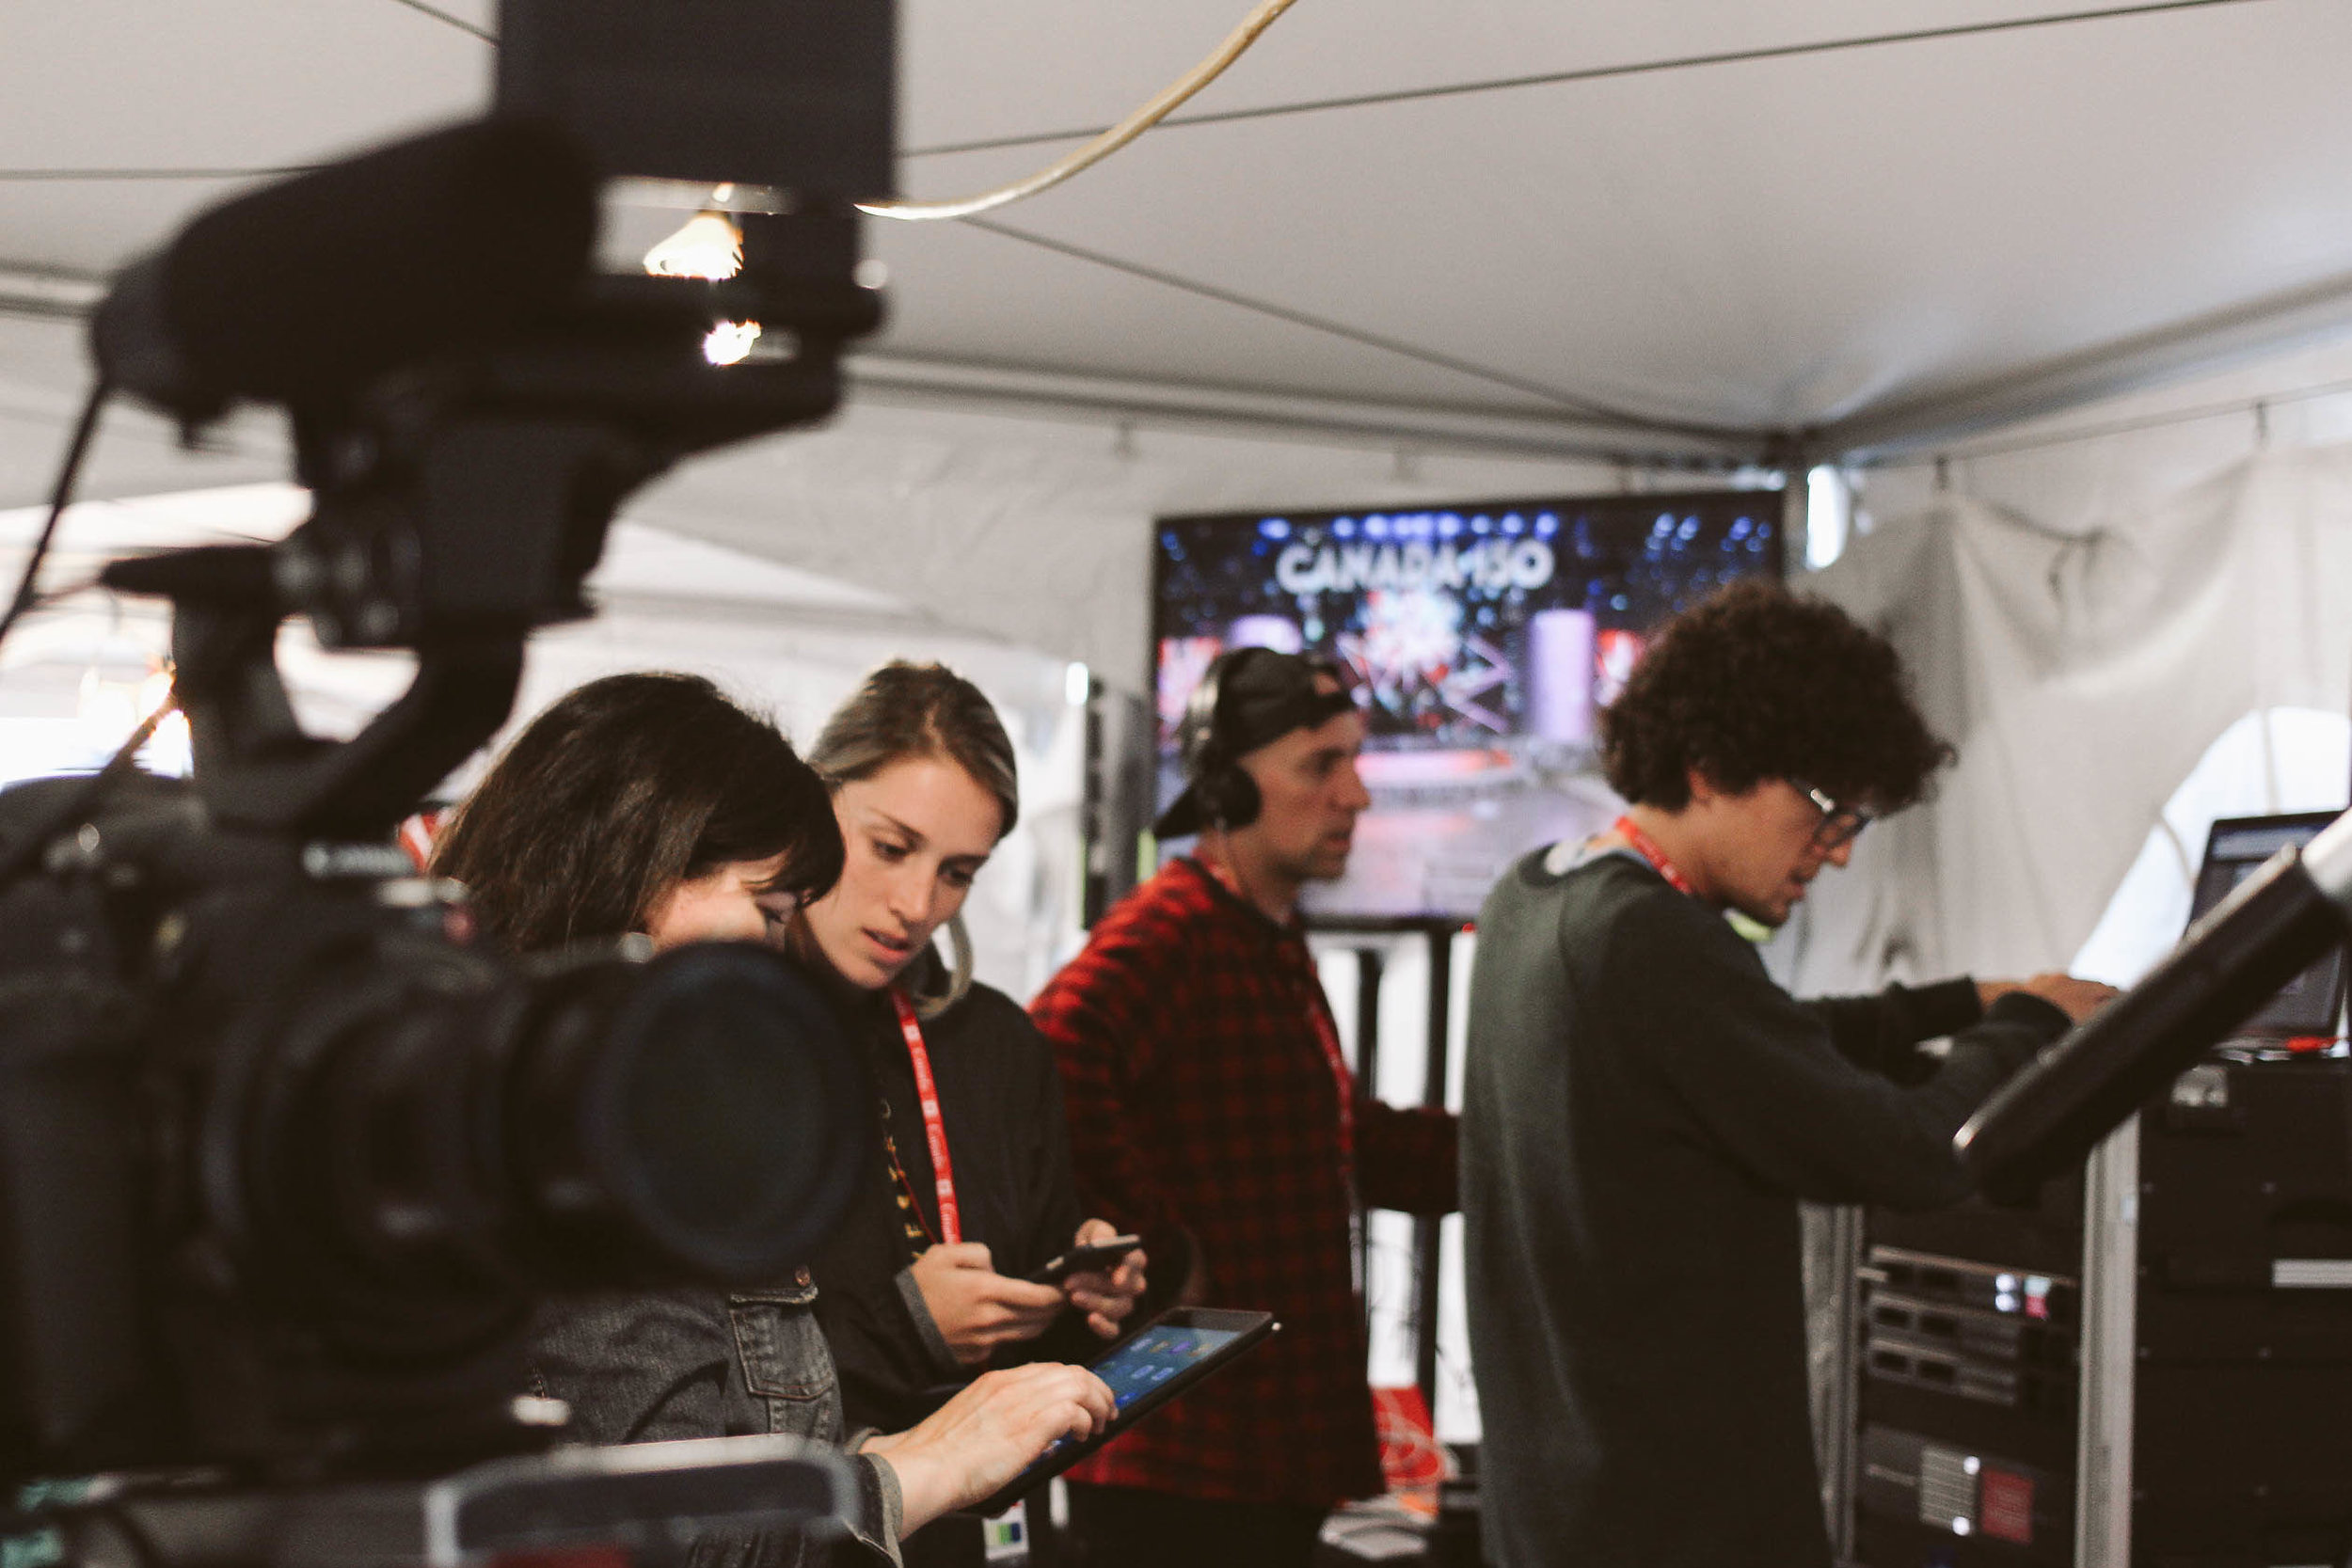 Behind-the-scenes photography of the live stream team at Canada 150